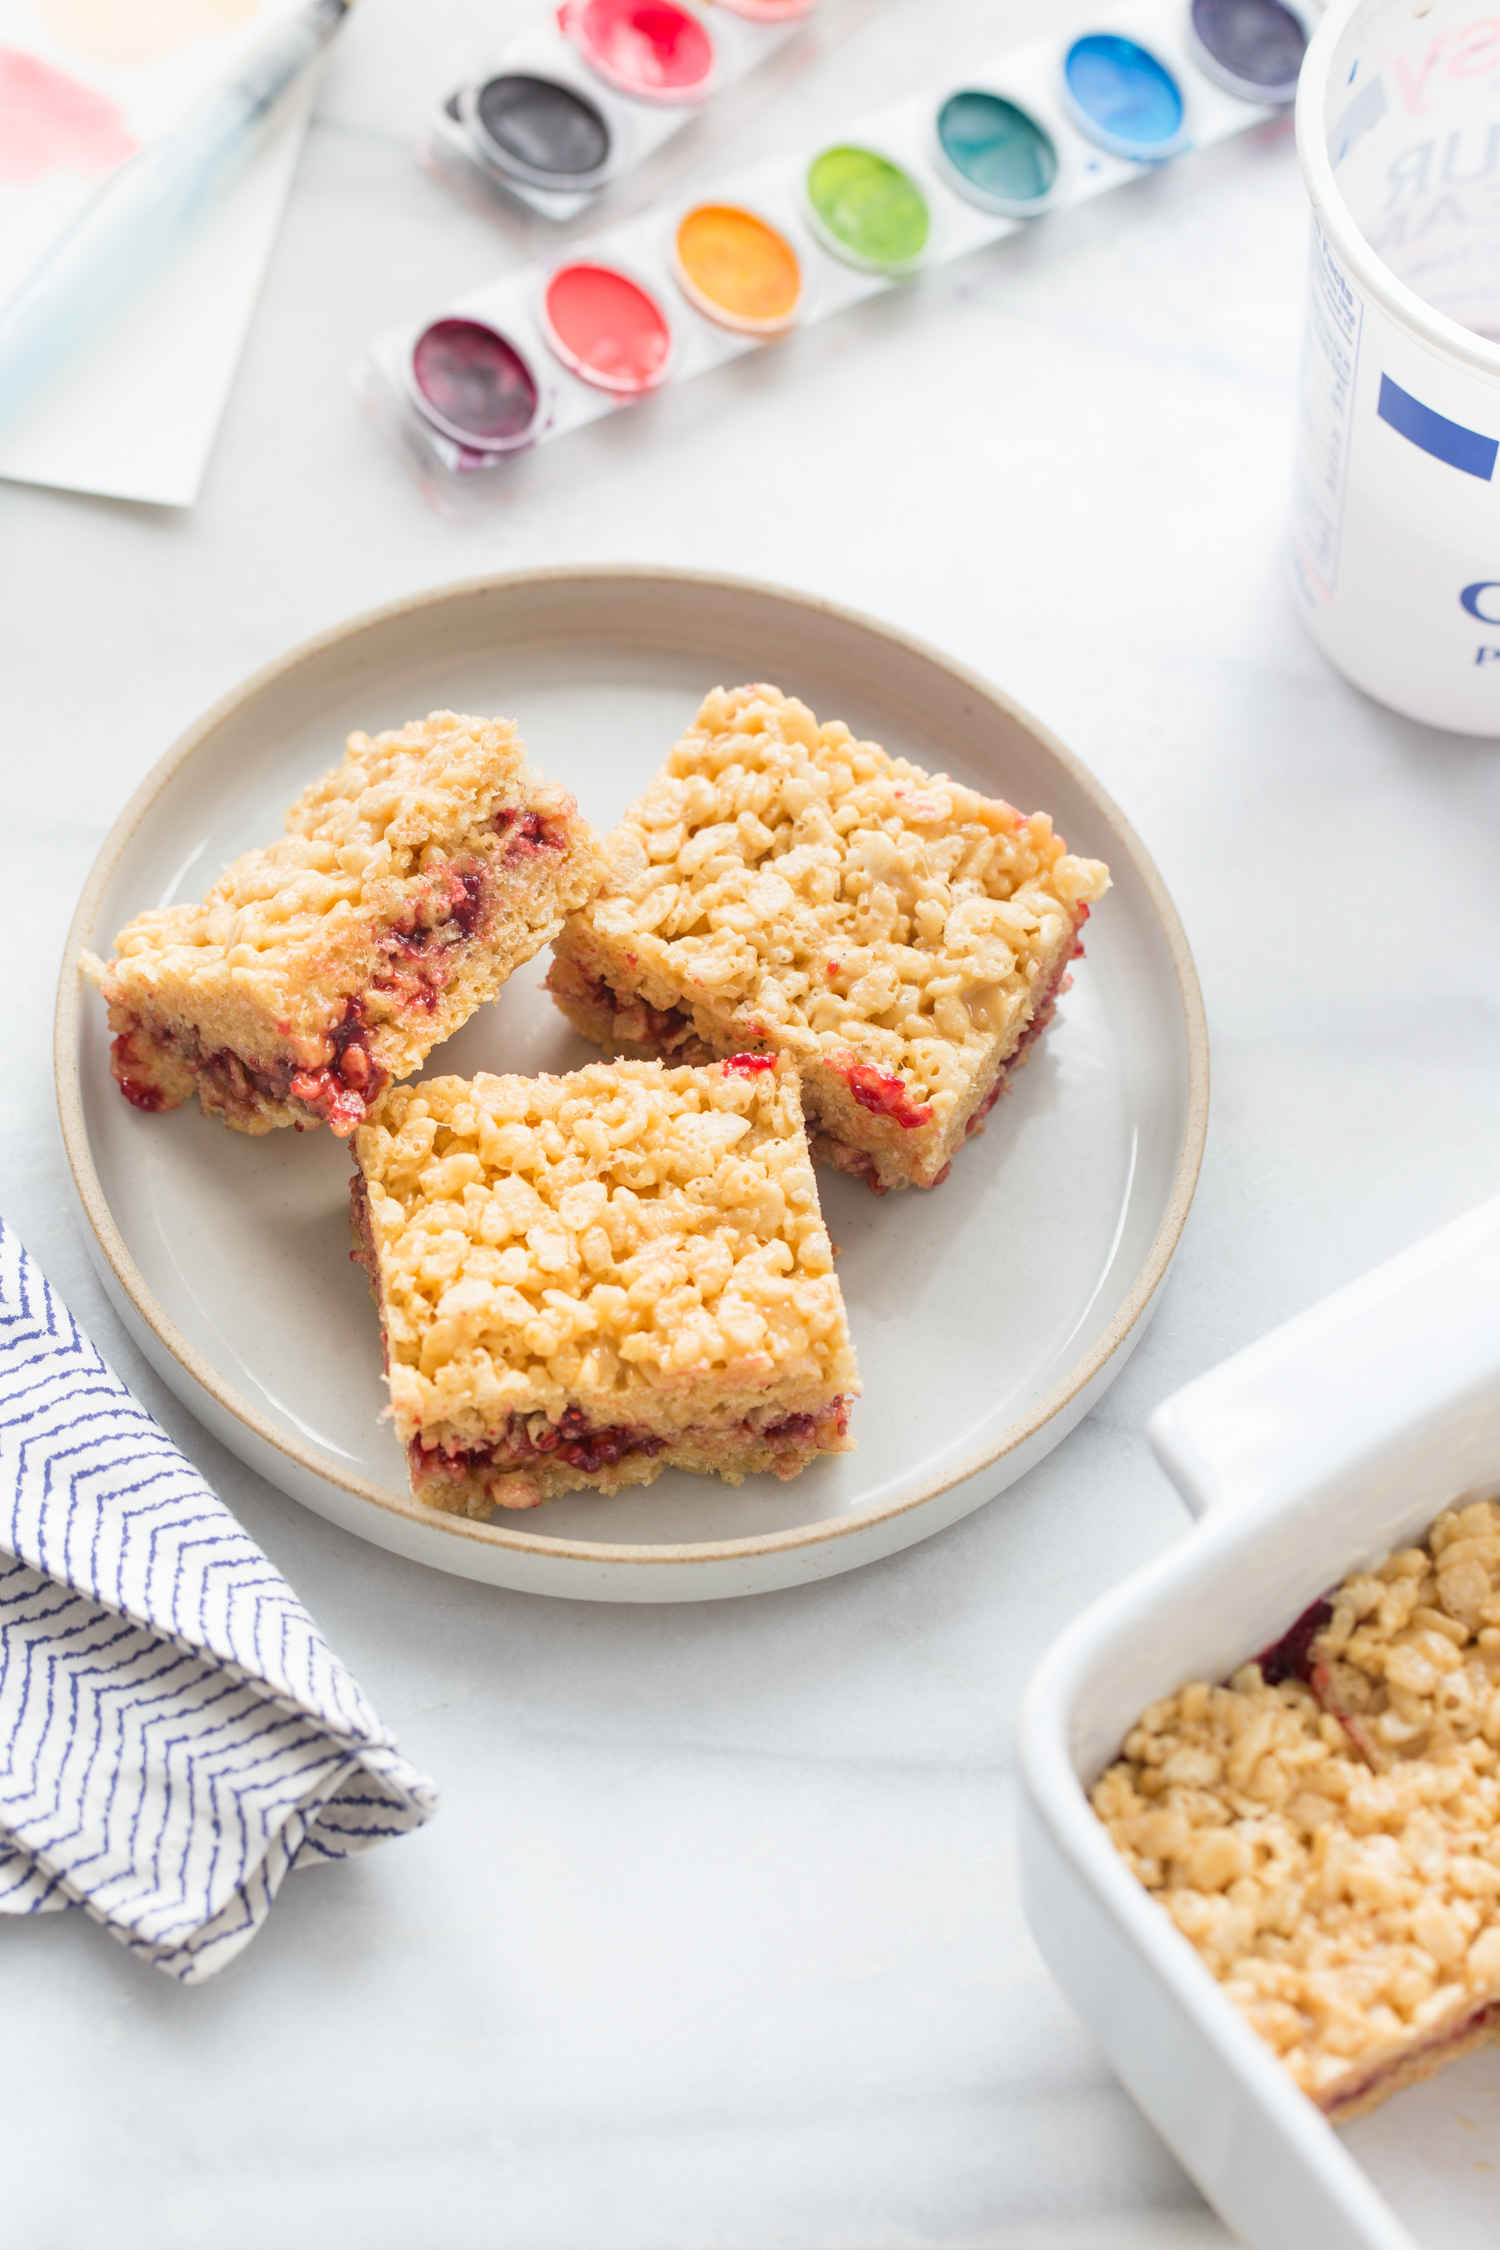 Almond Butter and Jelly Marshmallow Treats from Jelly Toast Blog